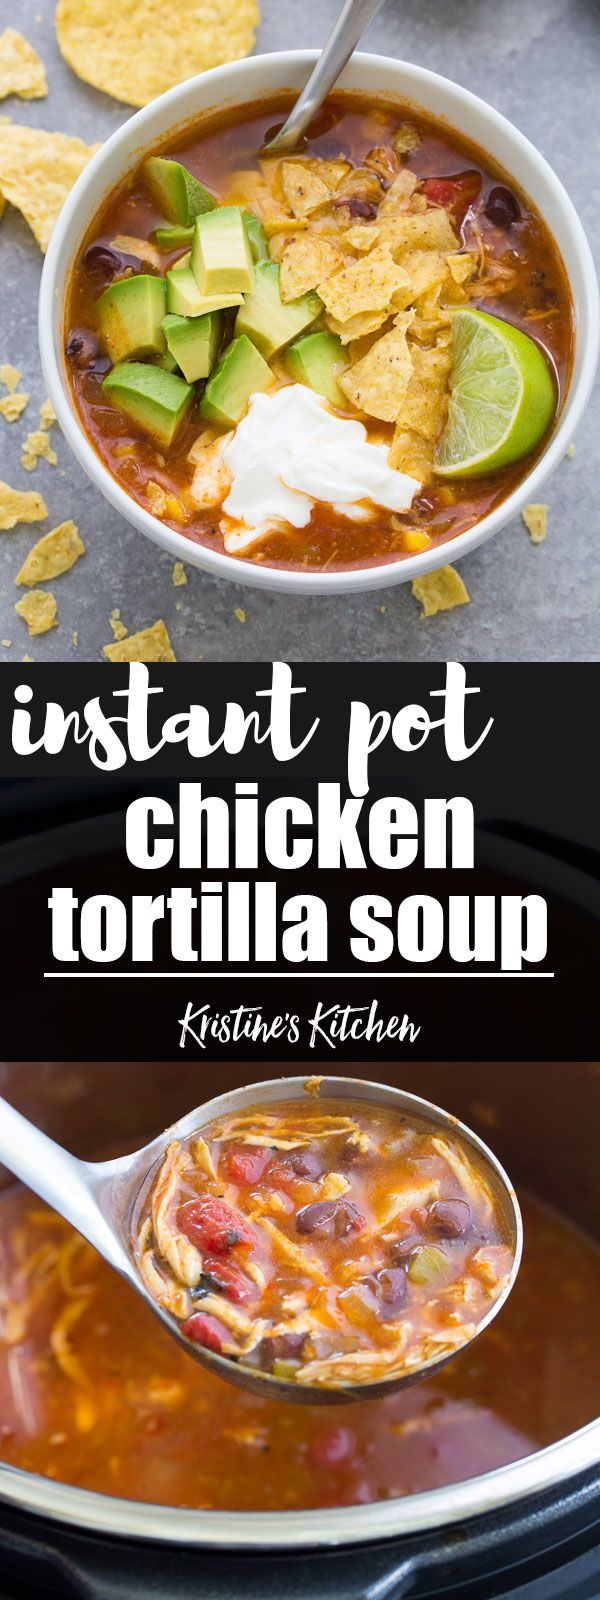 Delicious Instant Pot Chicken Tortilla Soup recipe made with black beans, fire roasted diced tomatoes and corn. This easy chicken tortilla soup can also be made in the slow cooker. It's a healthy one pot dinner recipe! #pressurecooker #instantpot #slowcoo